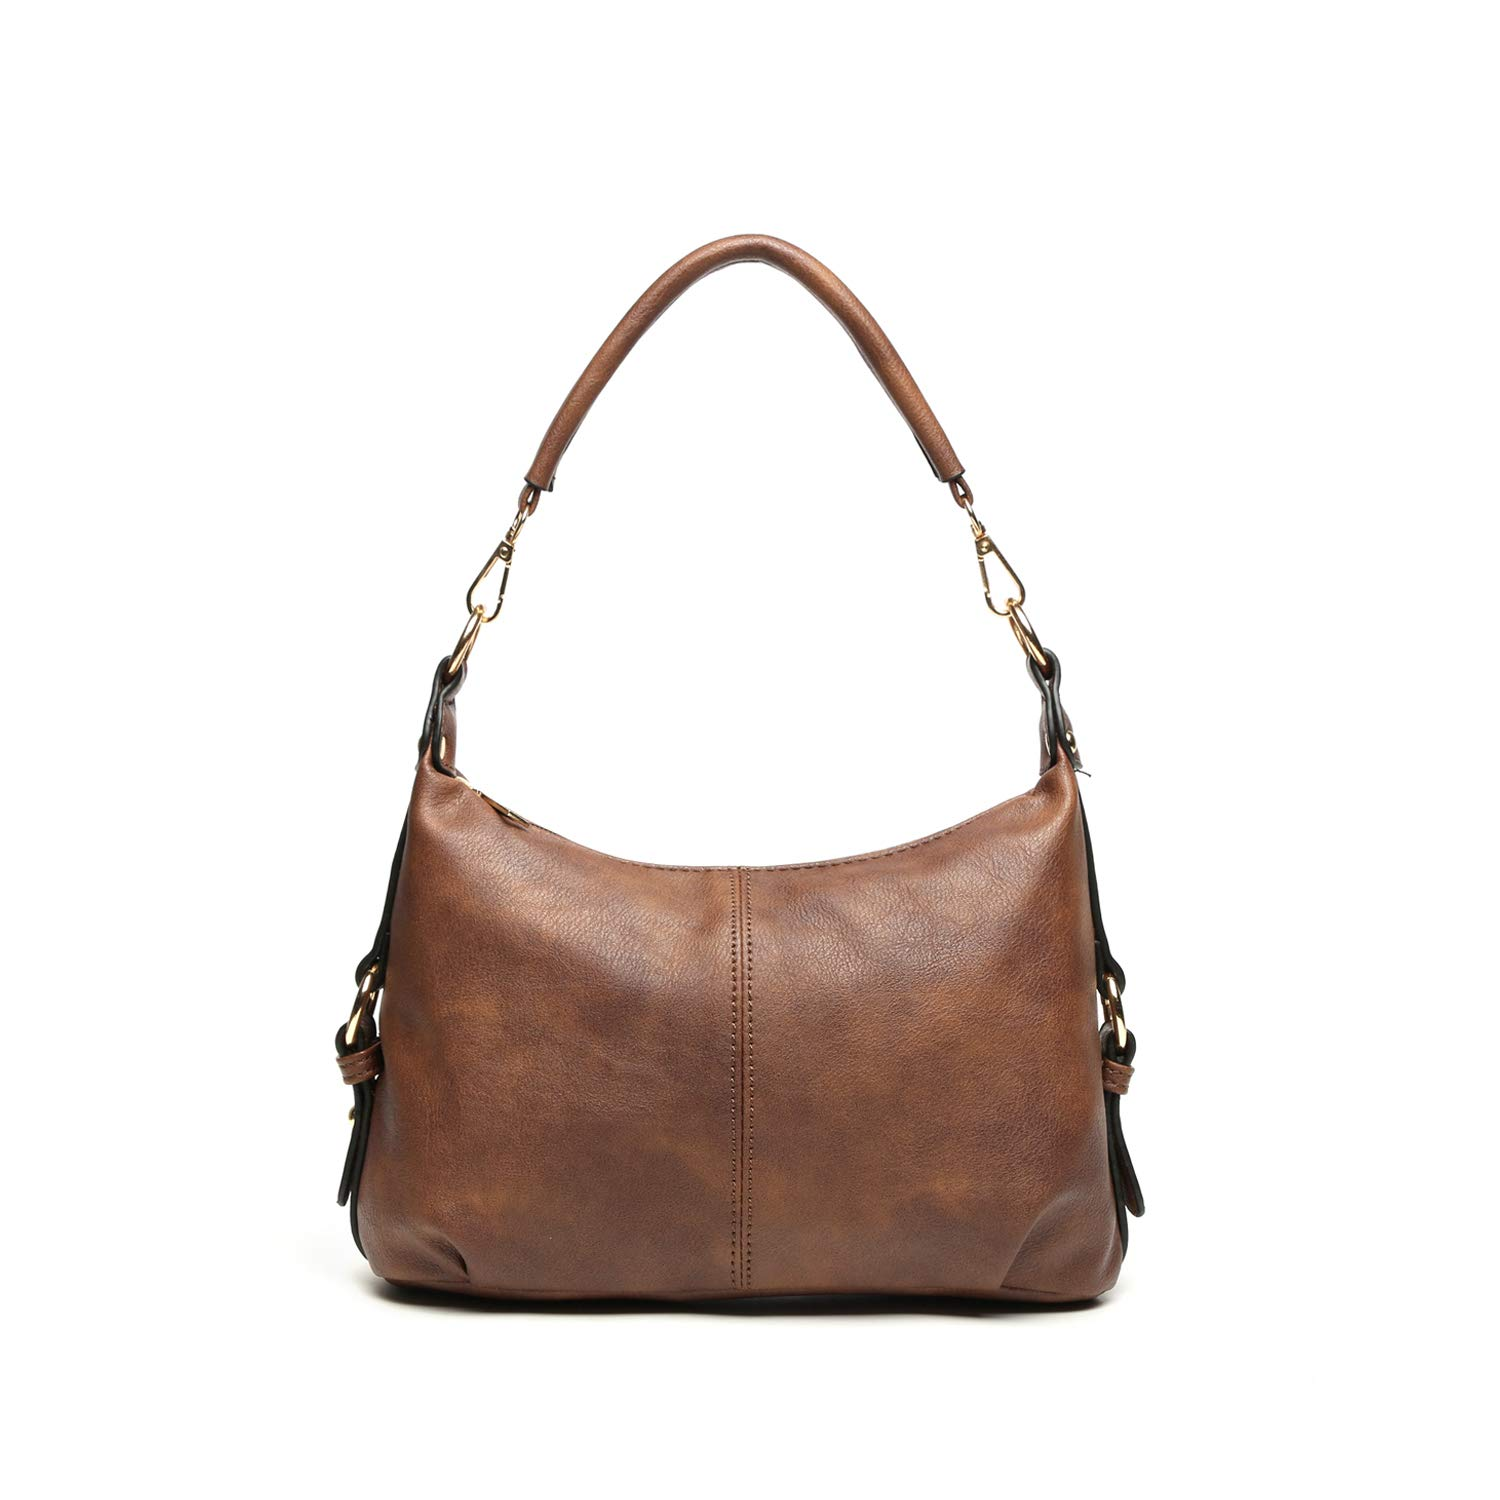 Shoulder Purse for Women PU Leather Small Hobo Handbag Top Handle Bag Crossbody Brown + Katloo Nail Clipper